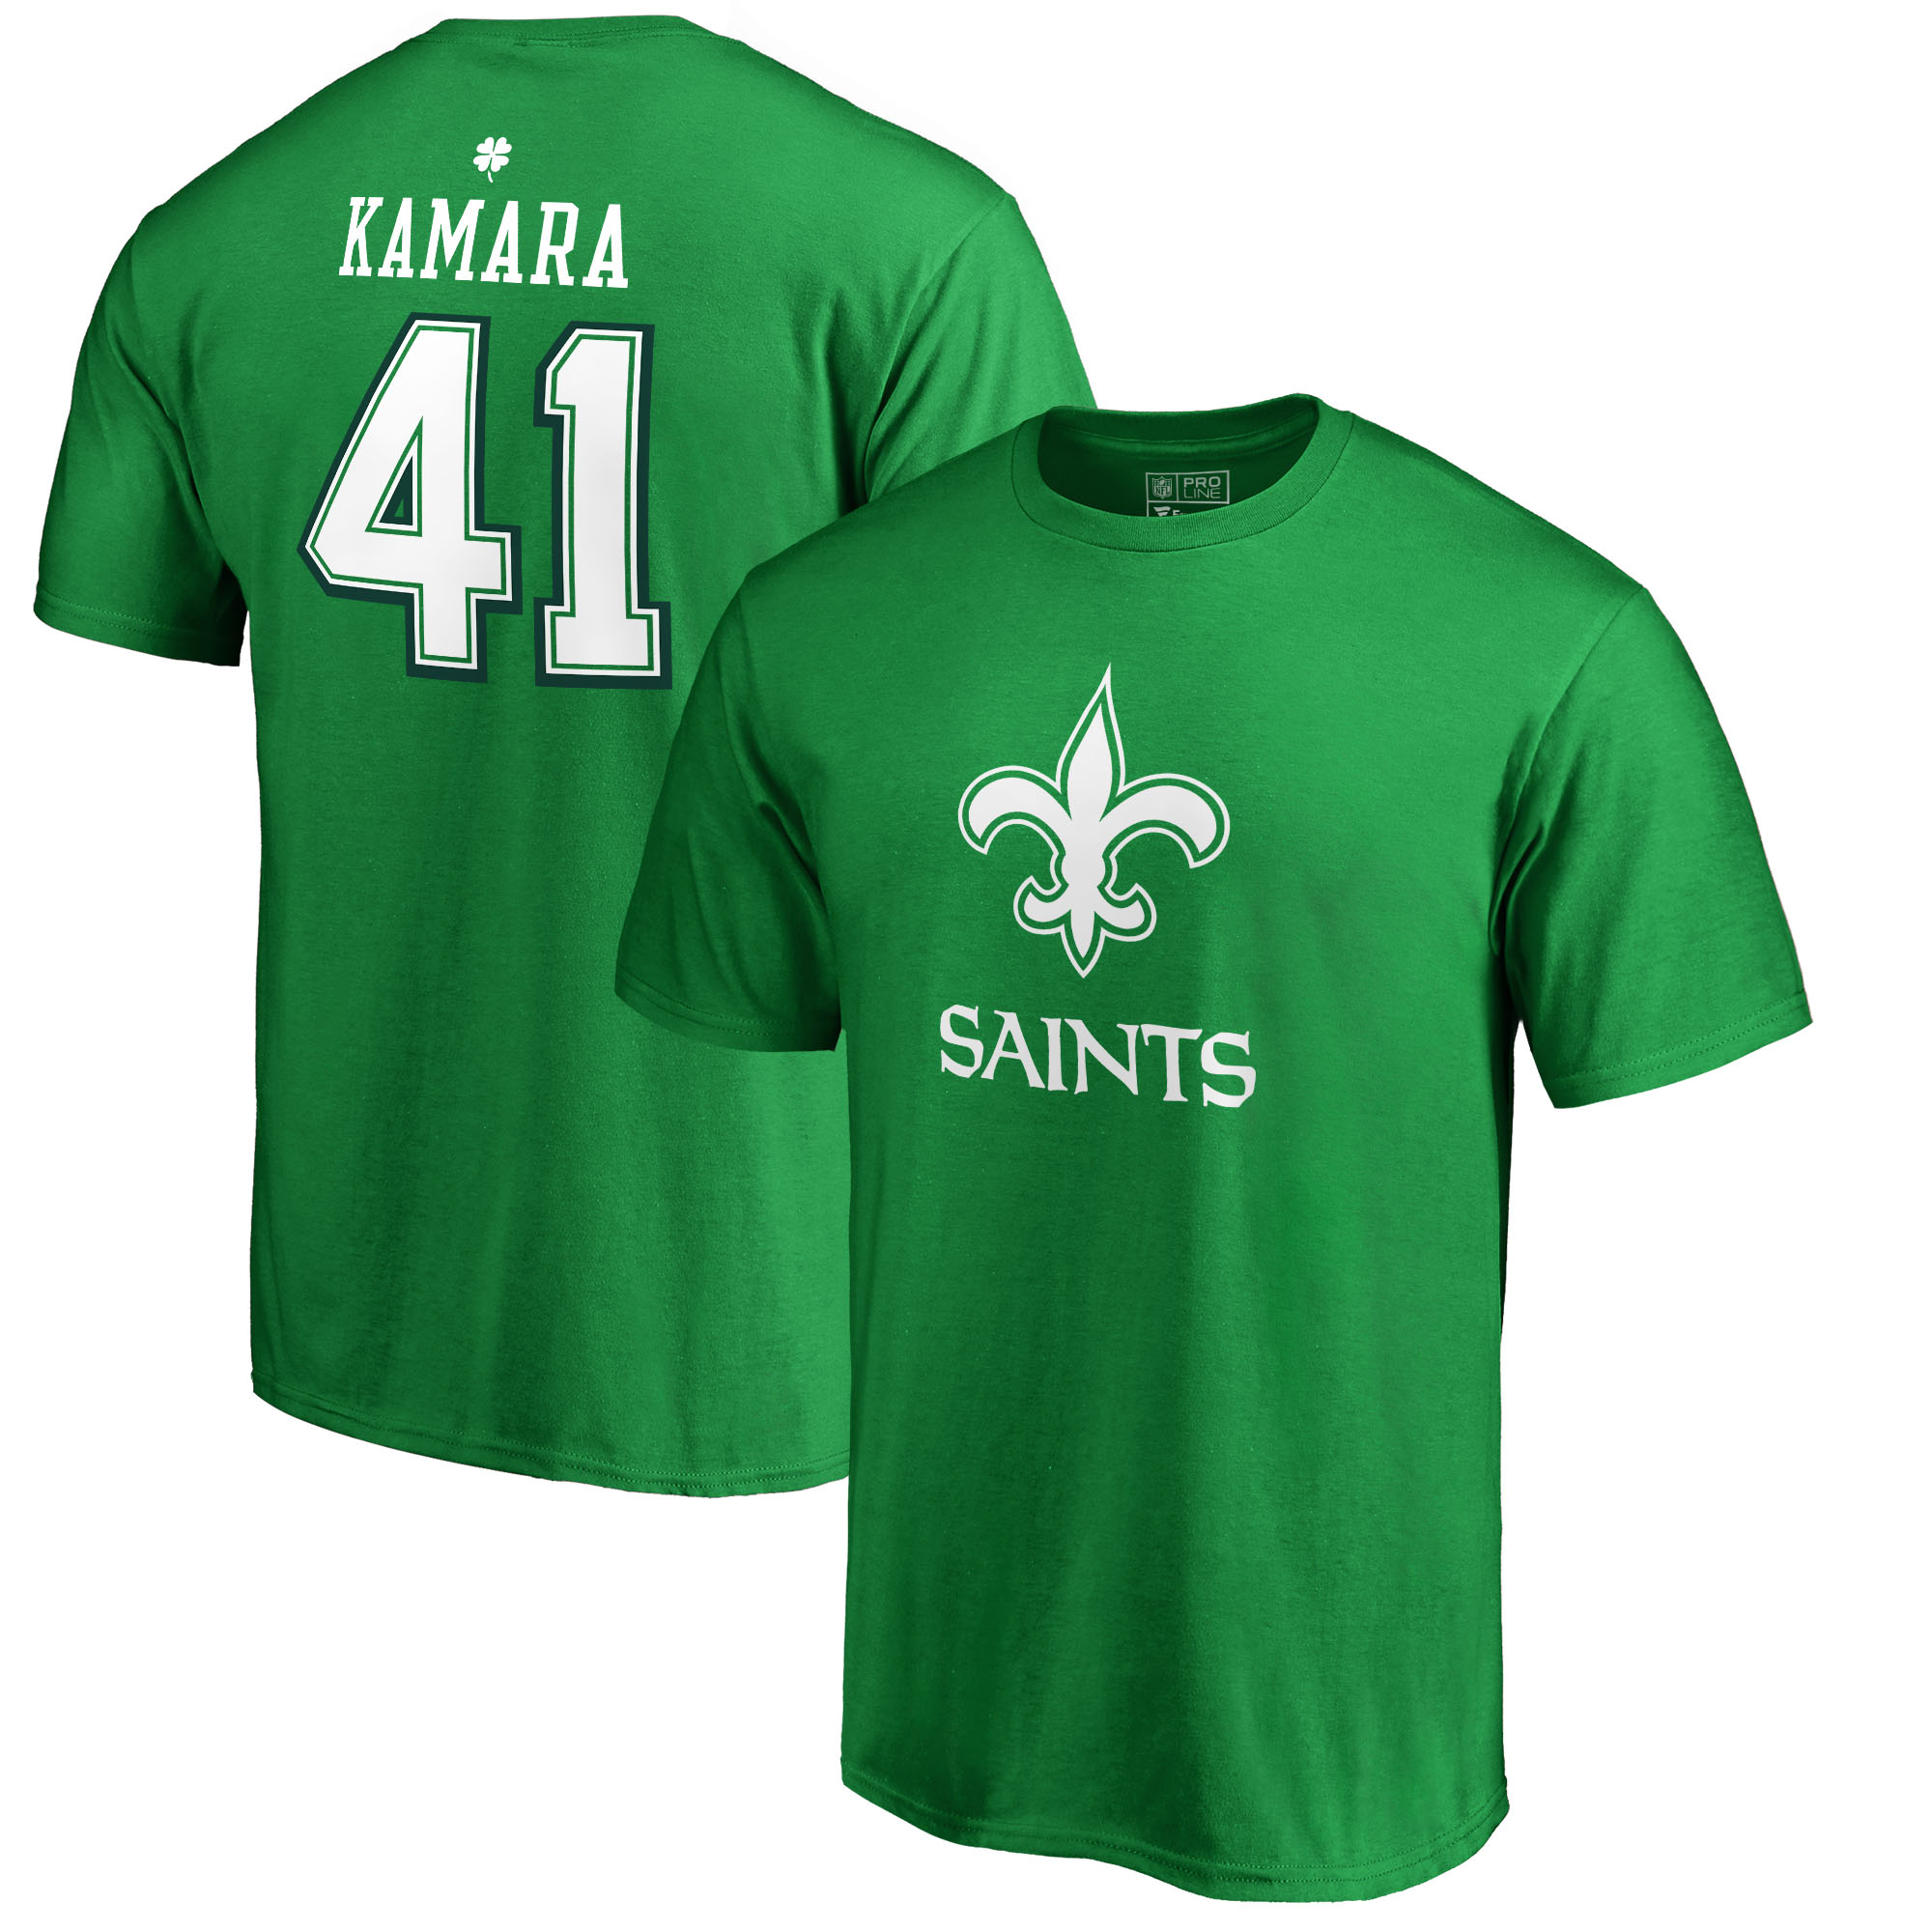 Alvin Kamara New Orleans Saints NFL Pro Line by Fanatics Branded St. Patrick's Day Icon Name & Number T-Shirt - Kelly Green